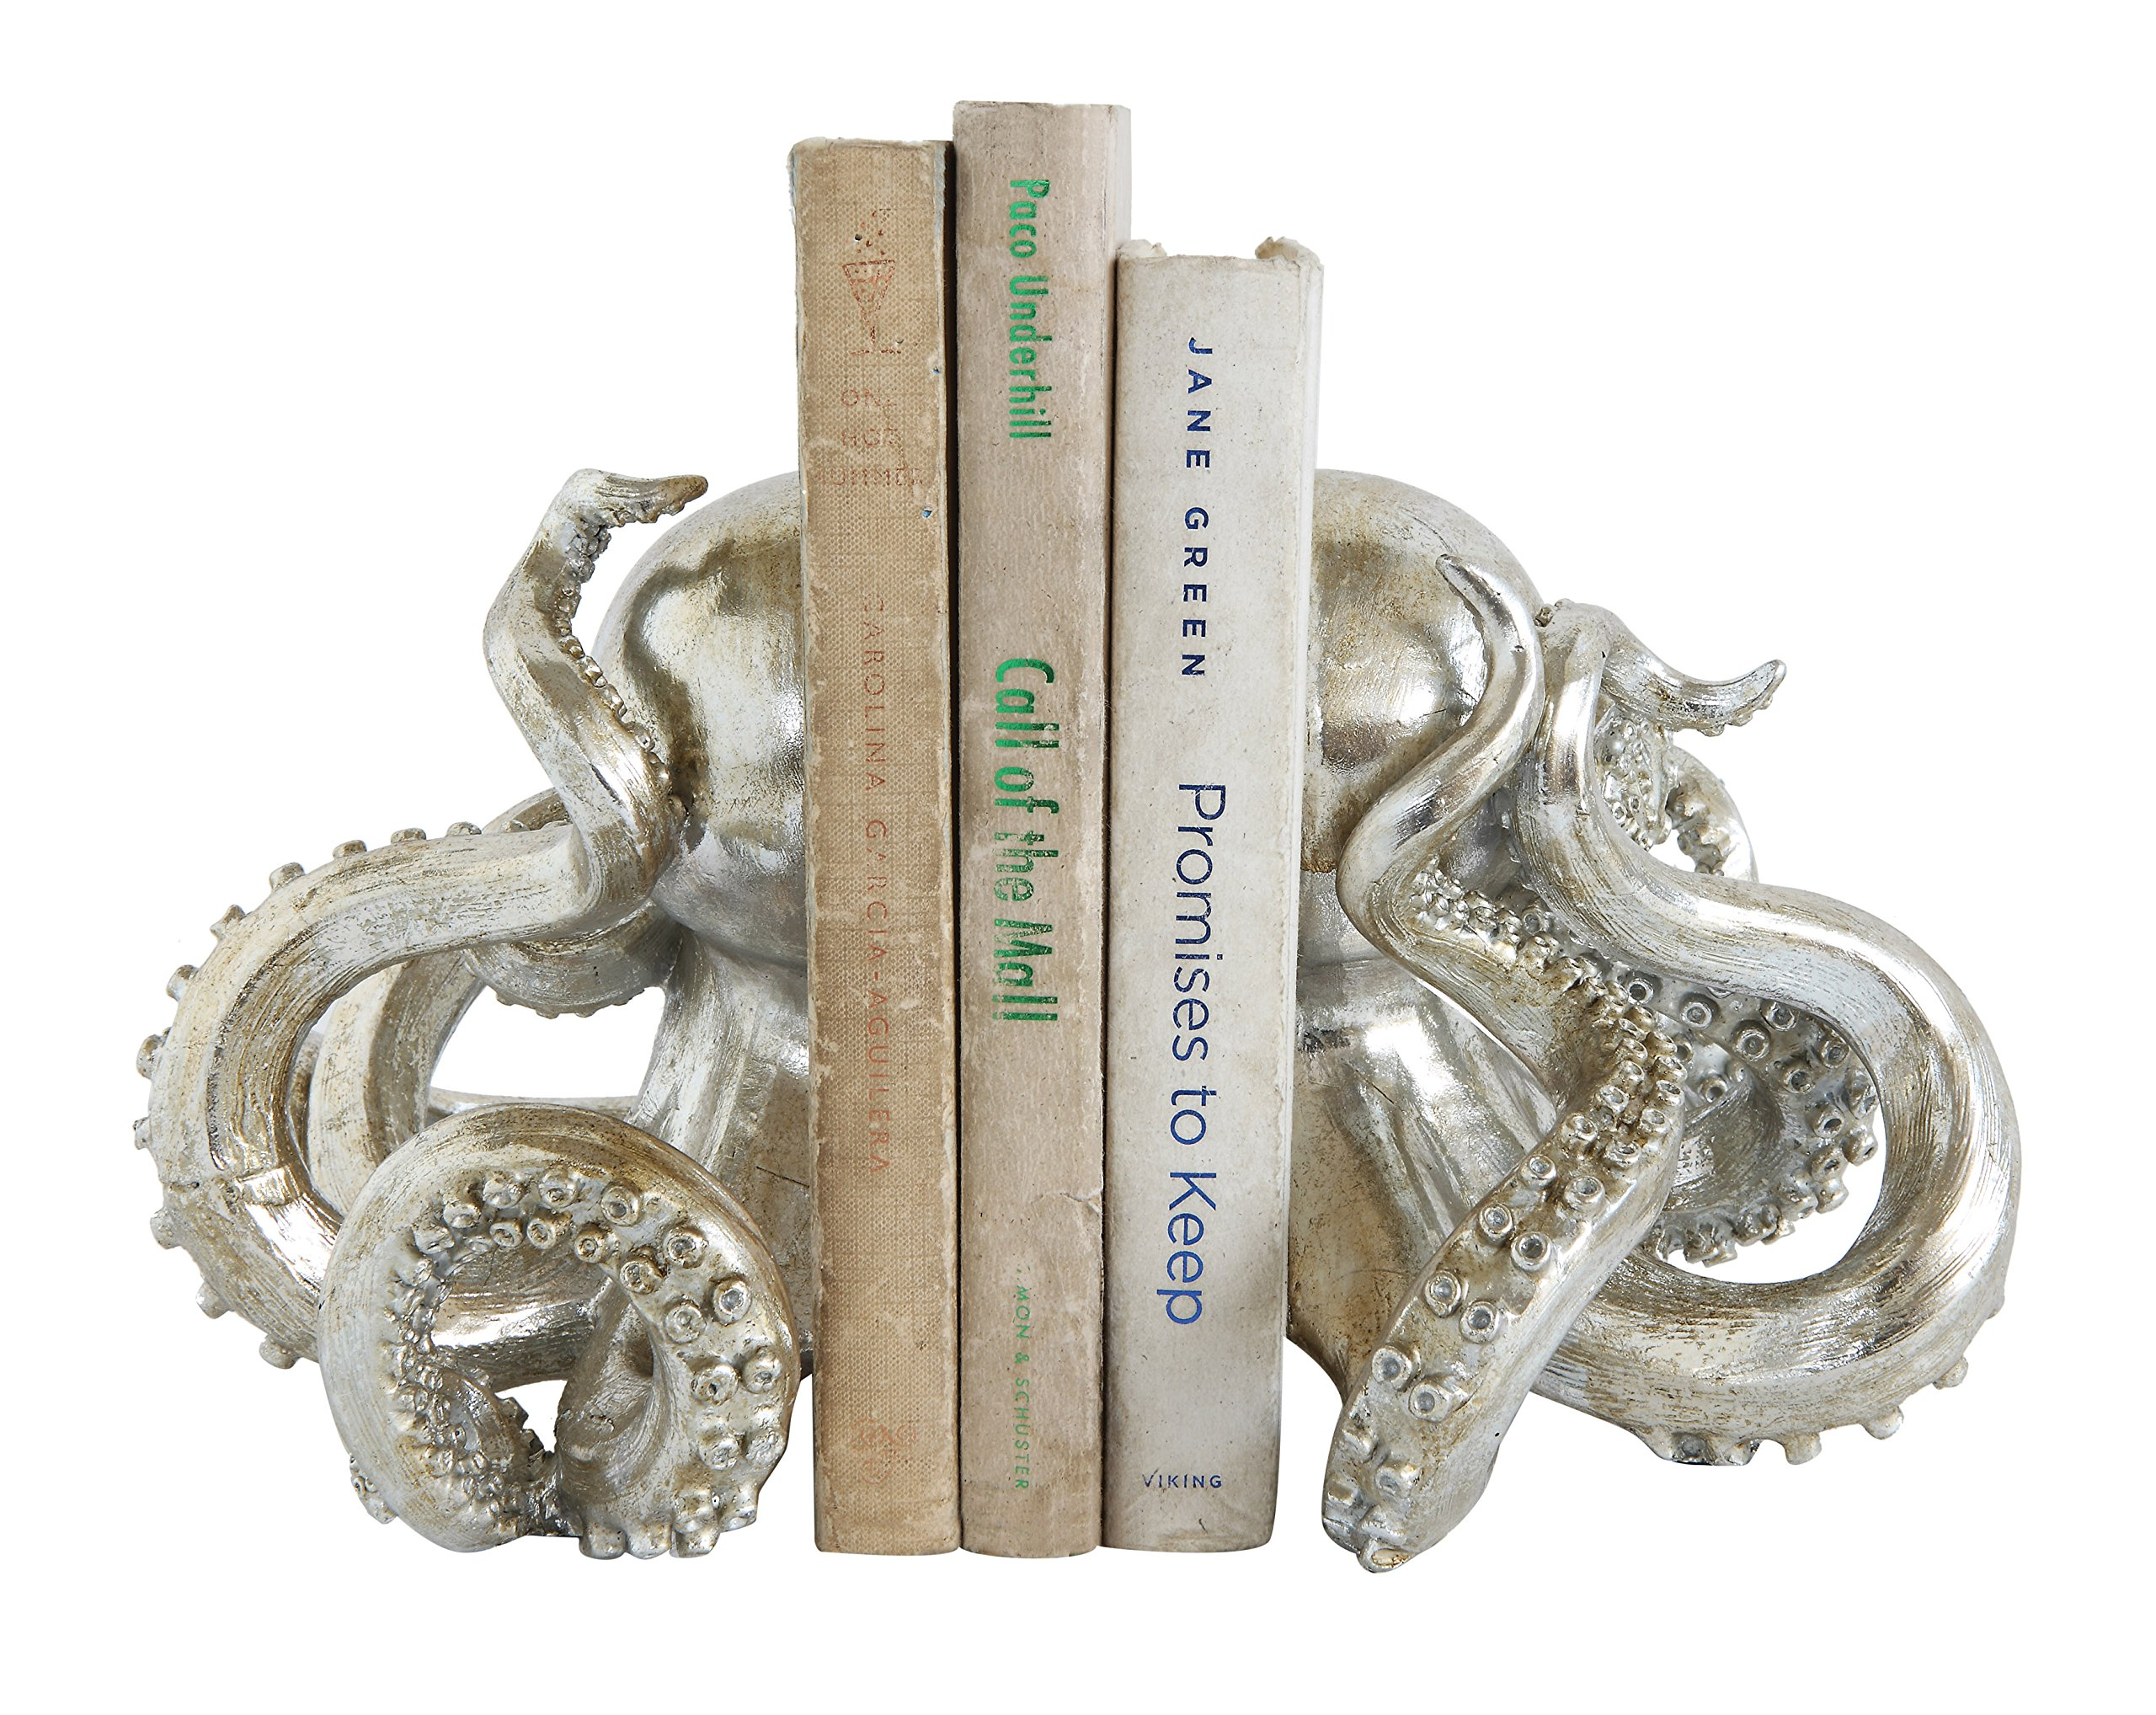 Creative Co-op Octopus Shaped Silver Resin Bookends (Set of 2 Pieces) by Creative Co-op